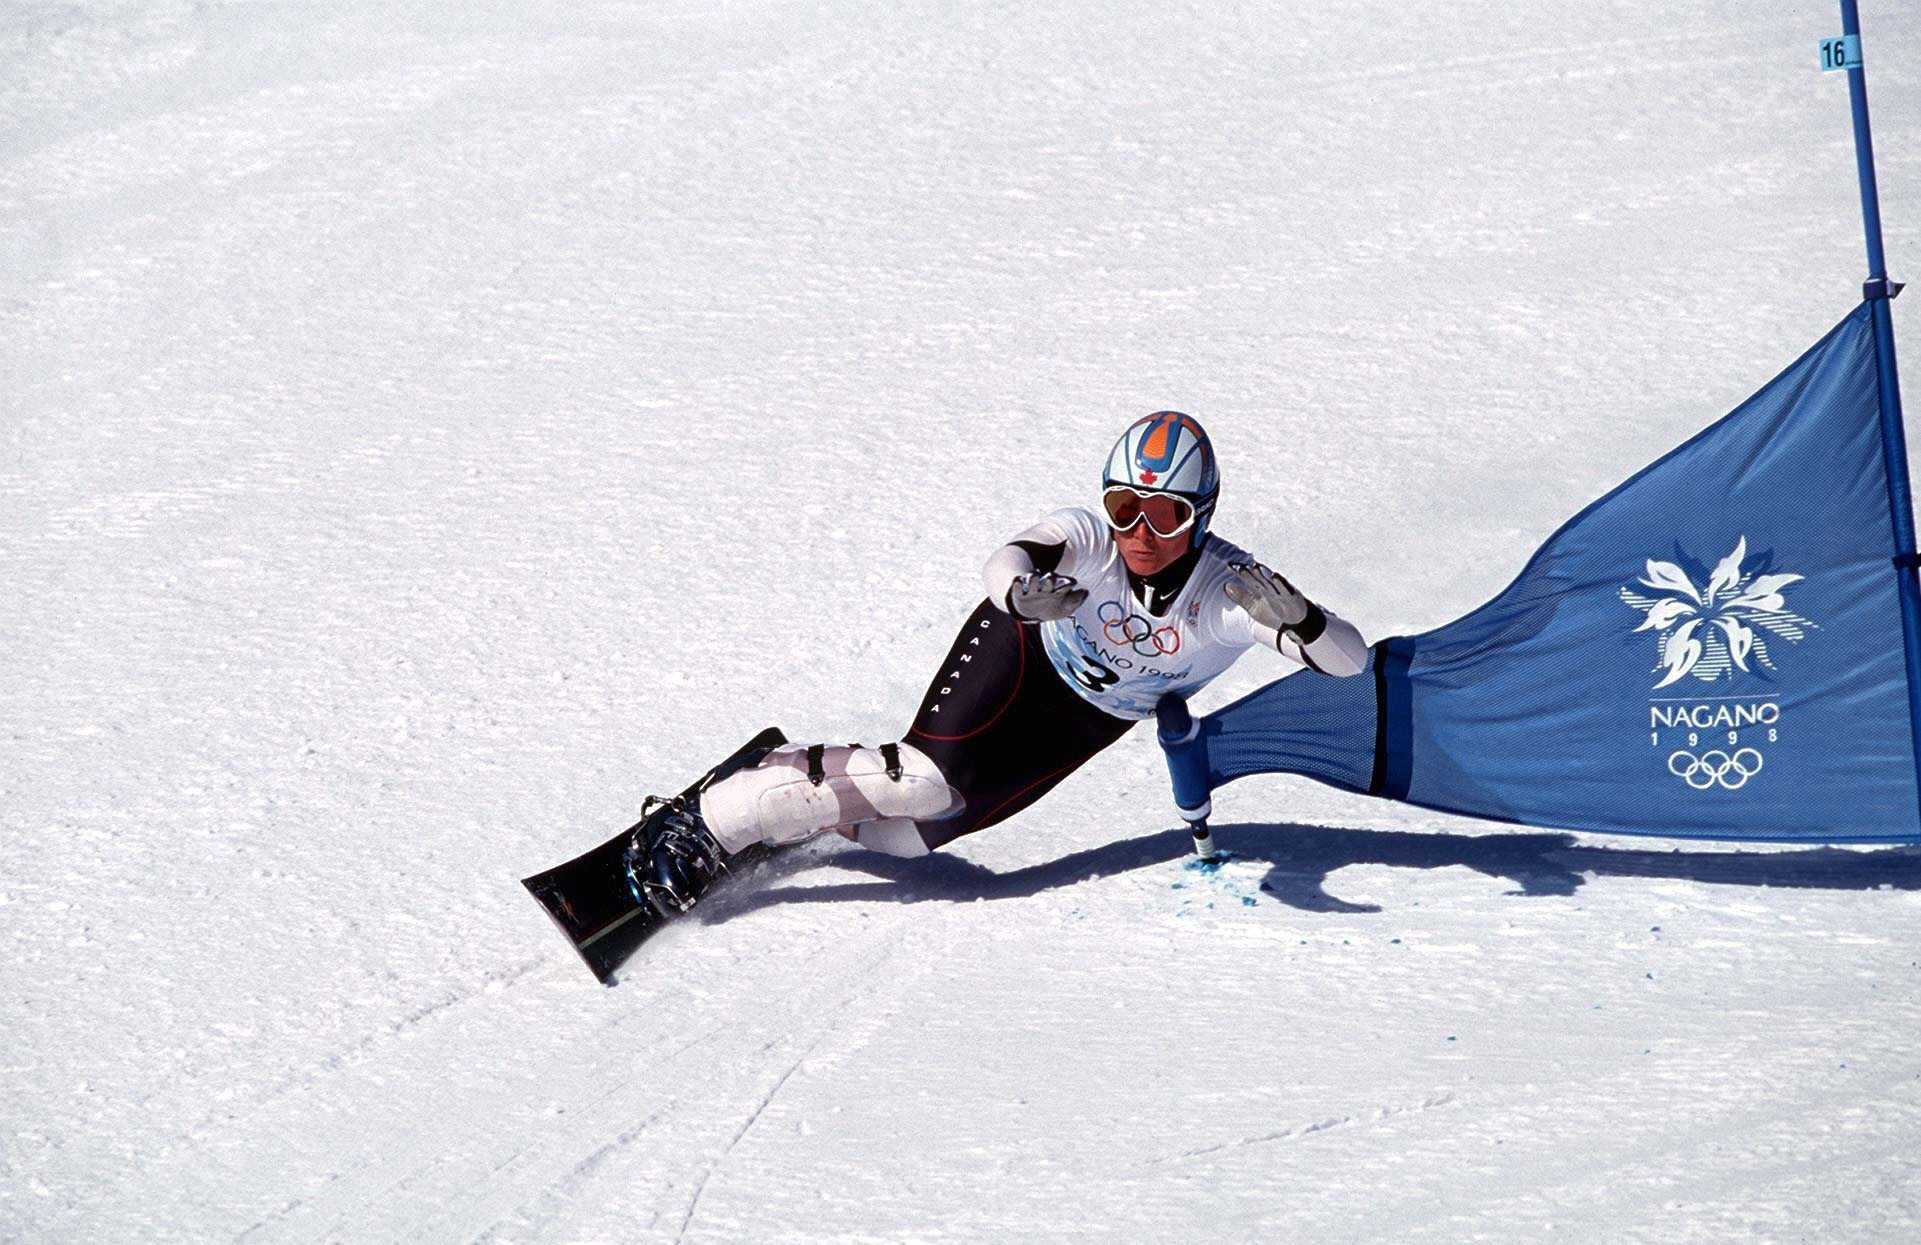 Snowboarding made its Winter Olympic debut at Nagano 1998 ©Getty Images